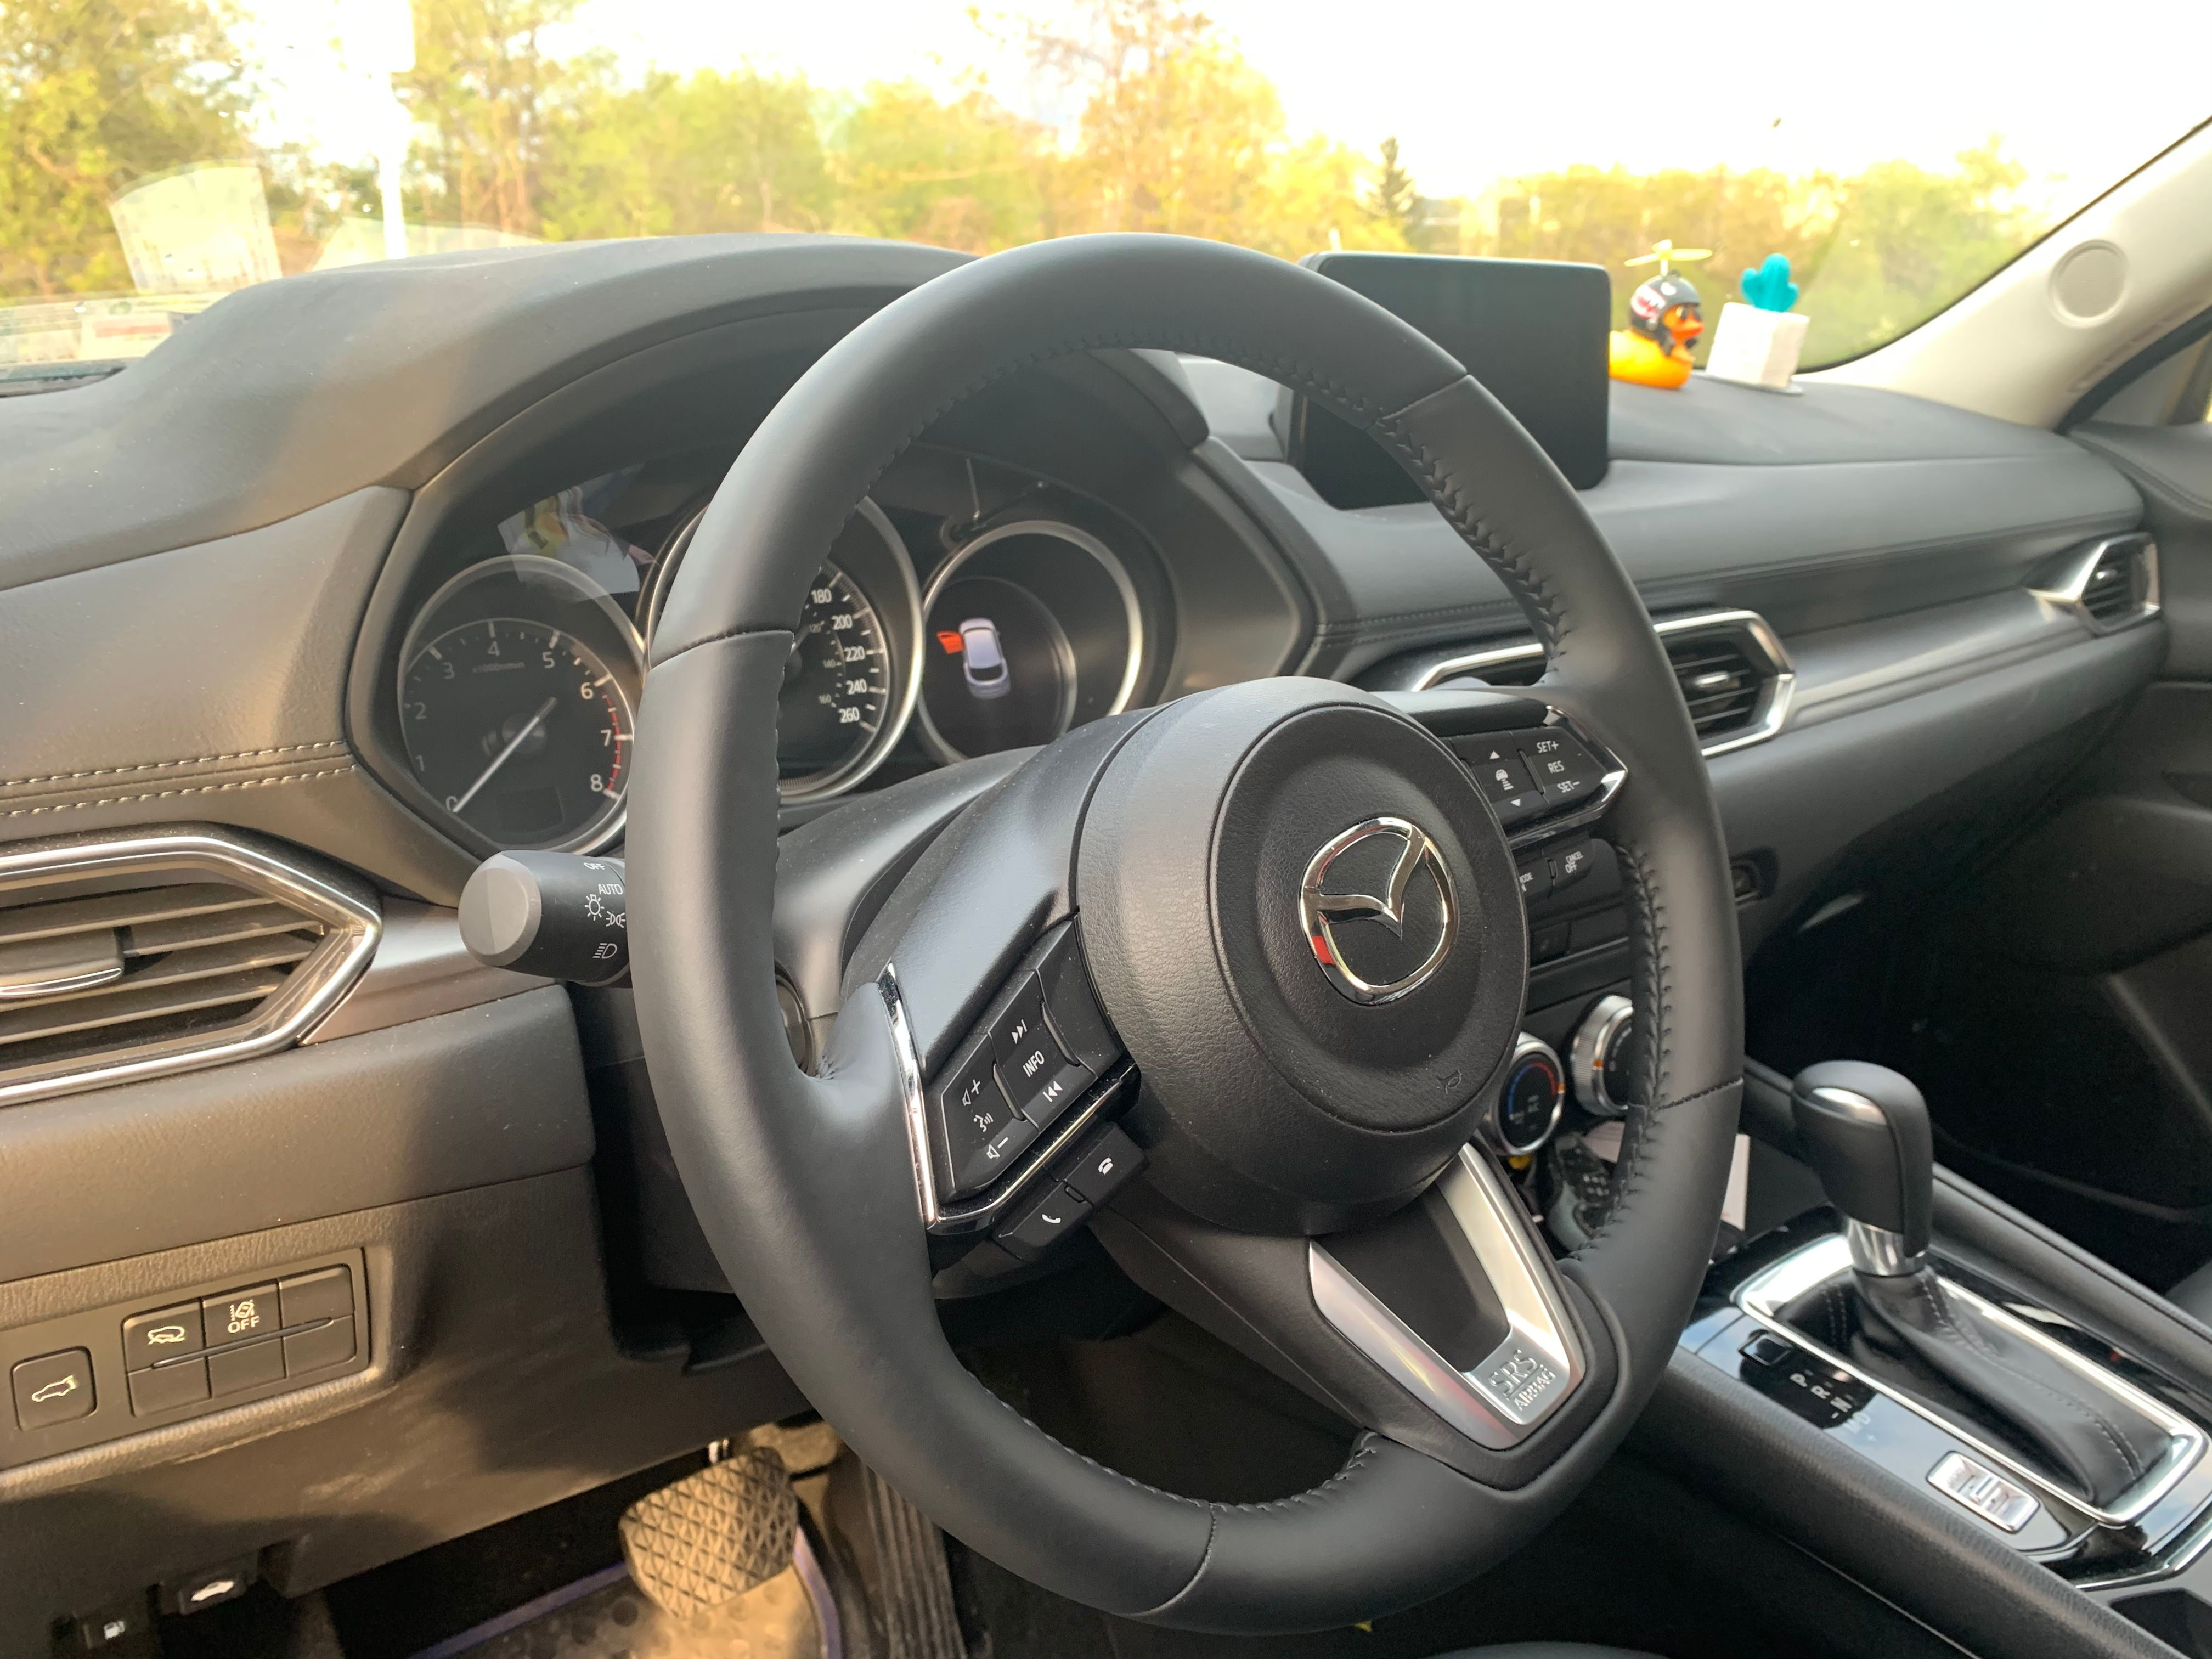 2021 Mazda CX-5 null - INFOCAR - Toronto's Most Comprehensive New and Used Auto Trading Platform